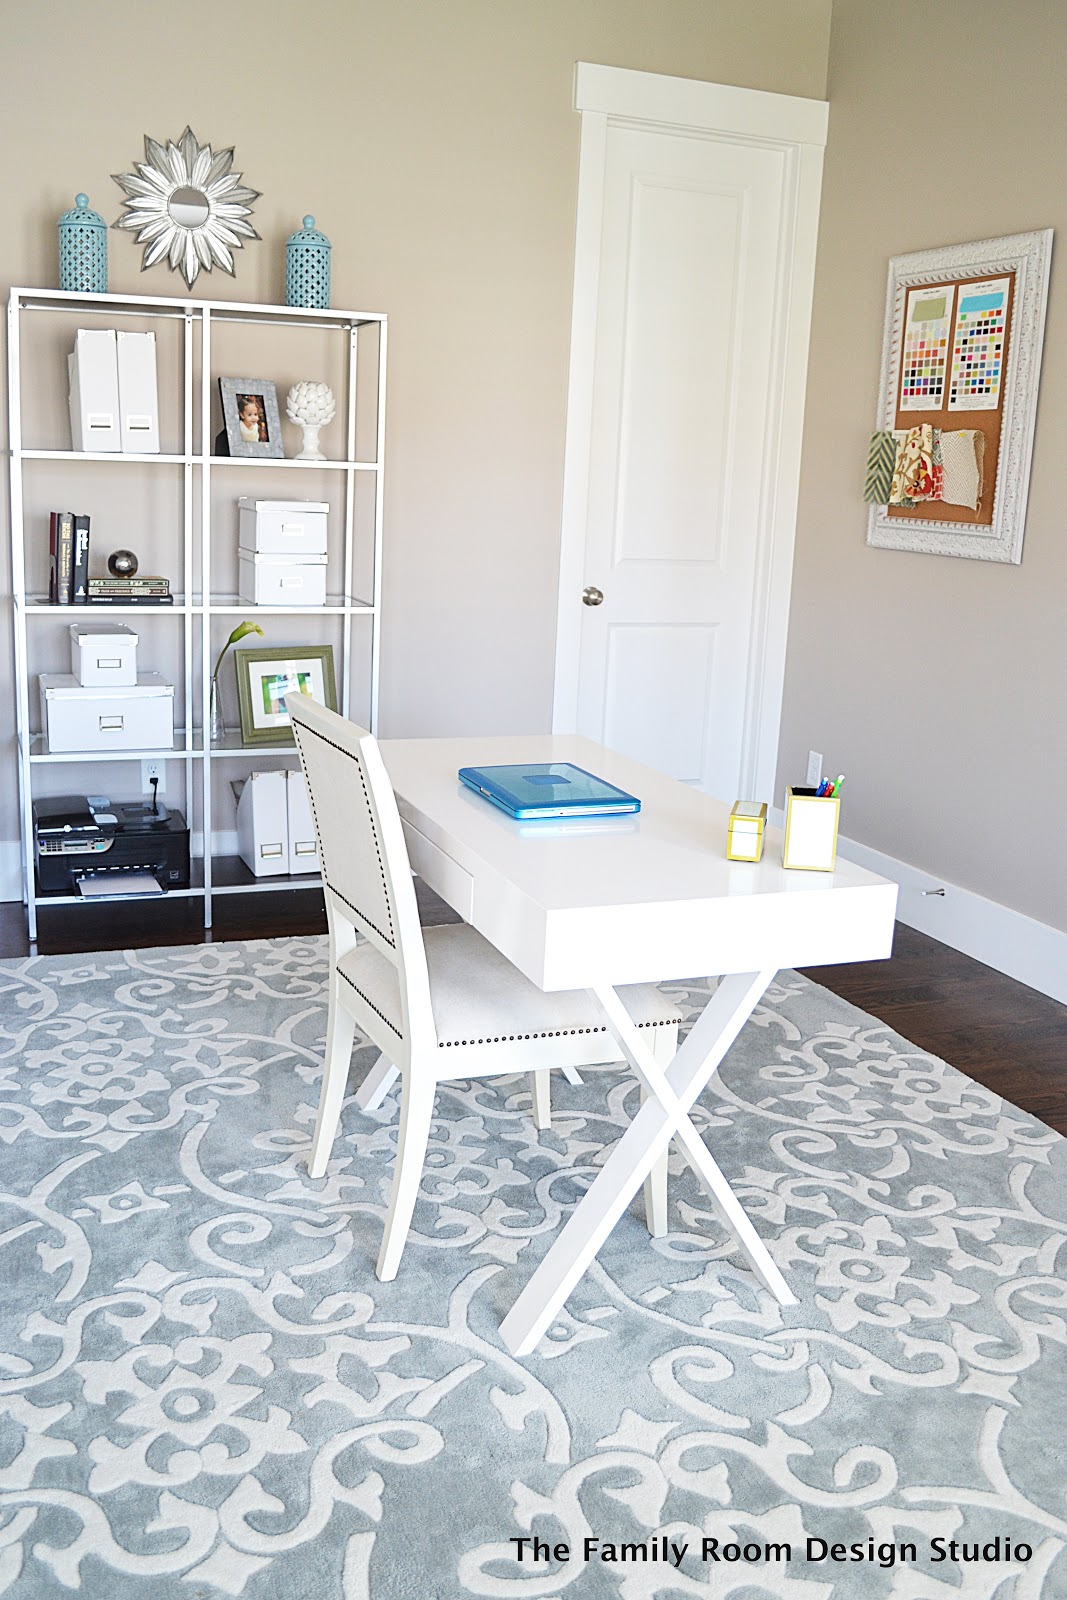 My New Home Office Progress and an Ikea Hack - Sita Montgomery Interiors